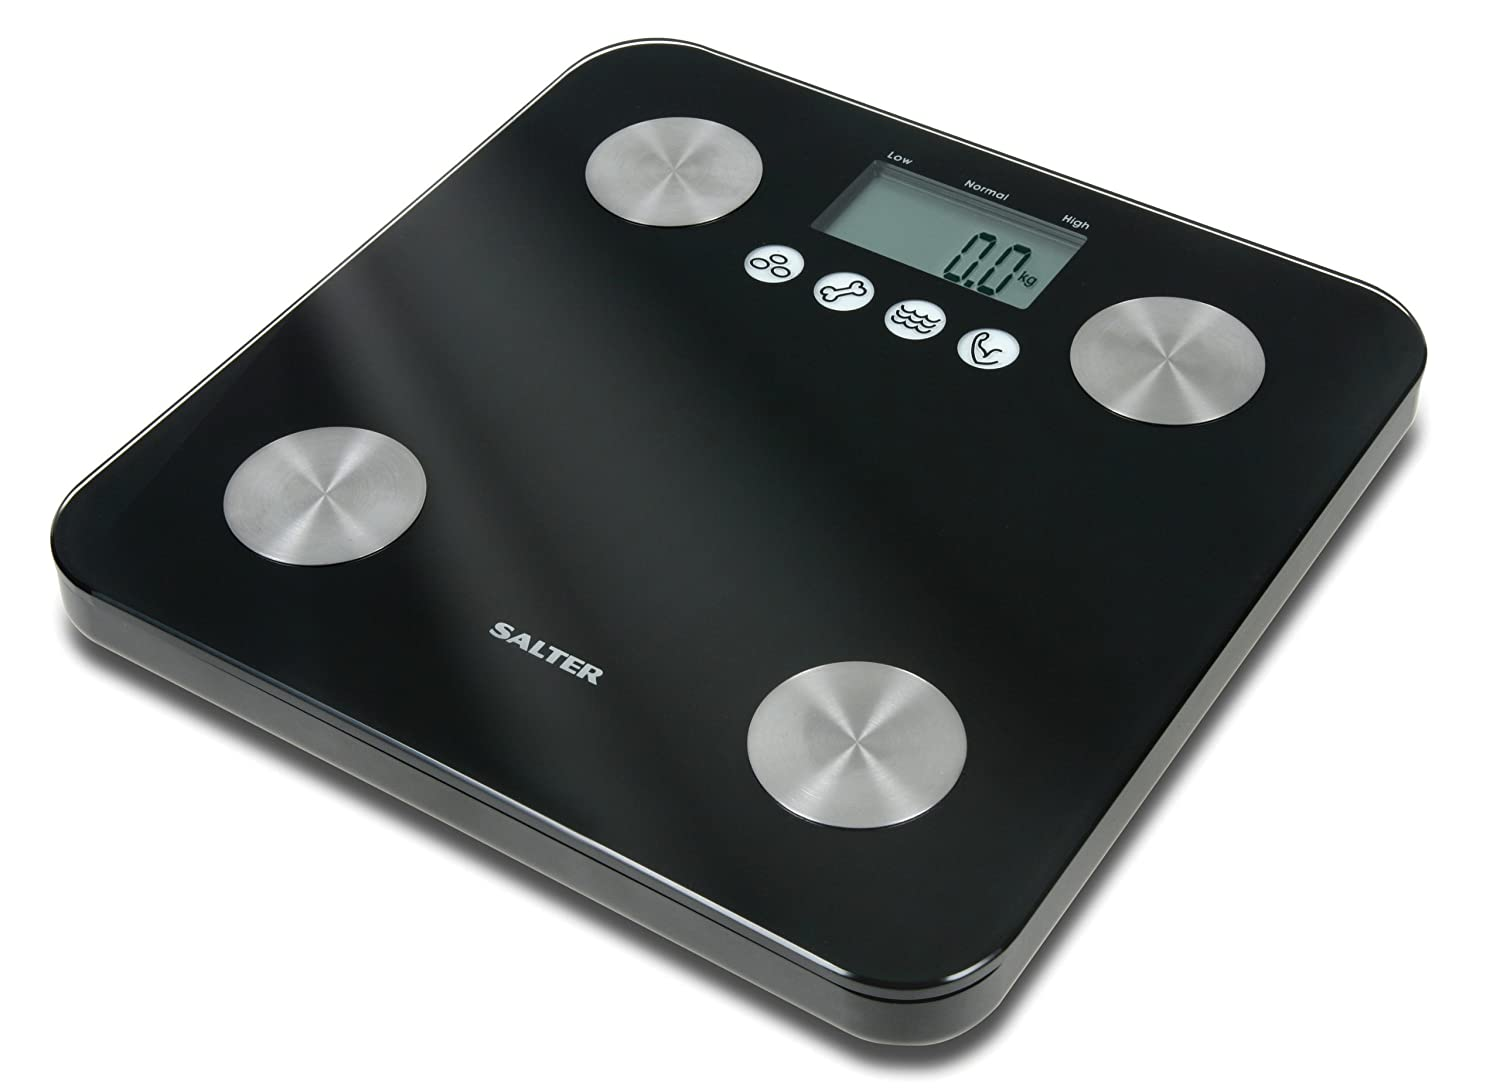 Salter Body Fat Analyser Digital Bathroom Scales Accurate